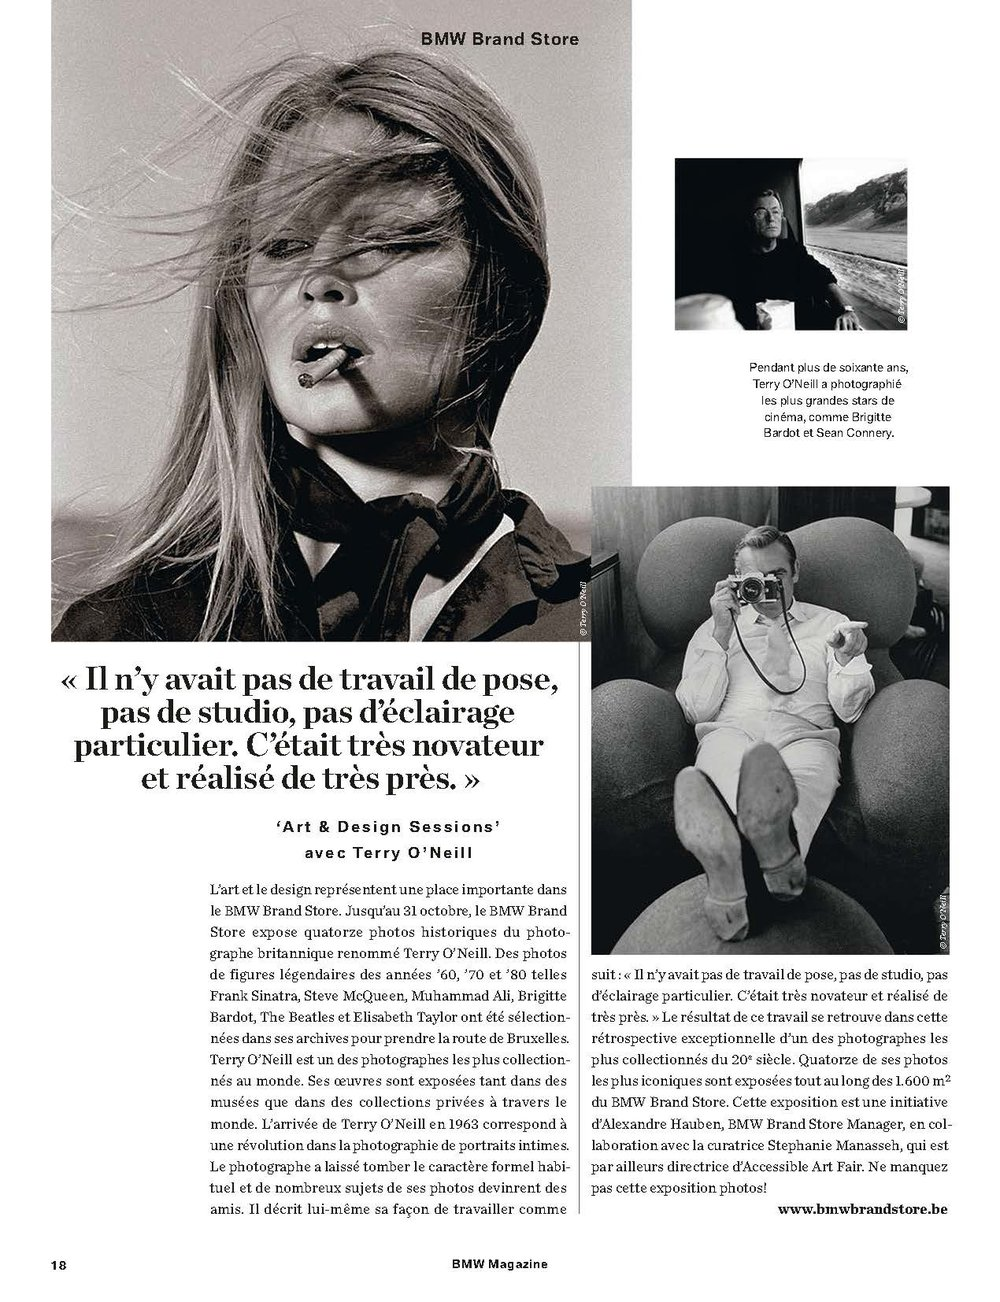 BMW Magazine - Terry O'Neill at Ransom Art